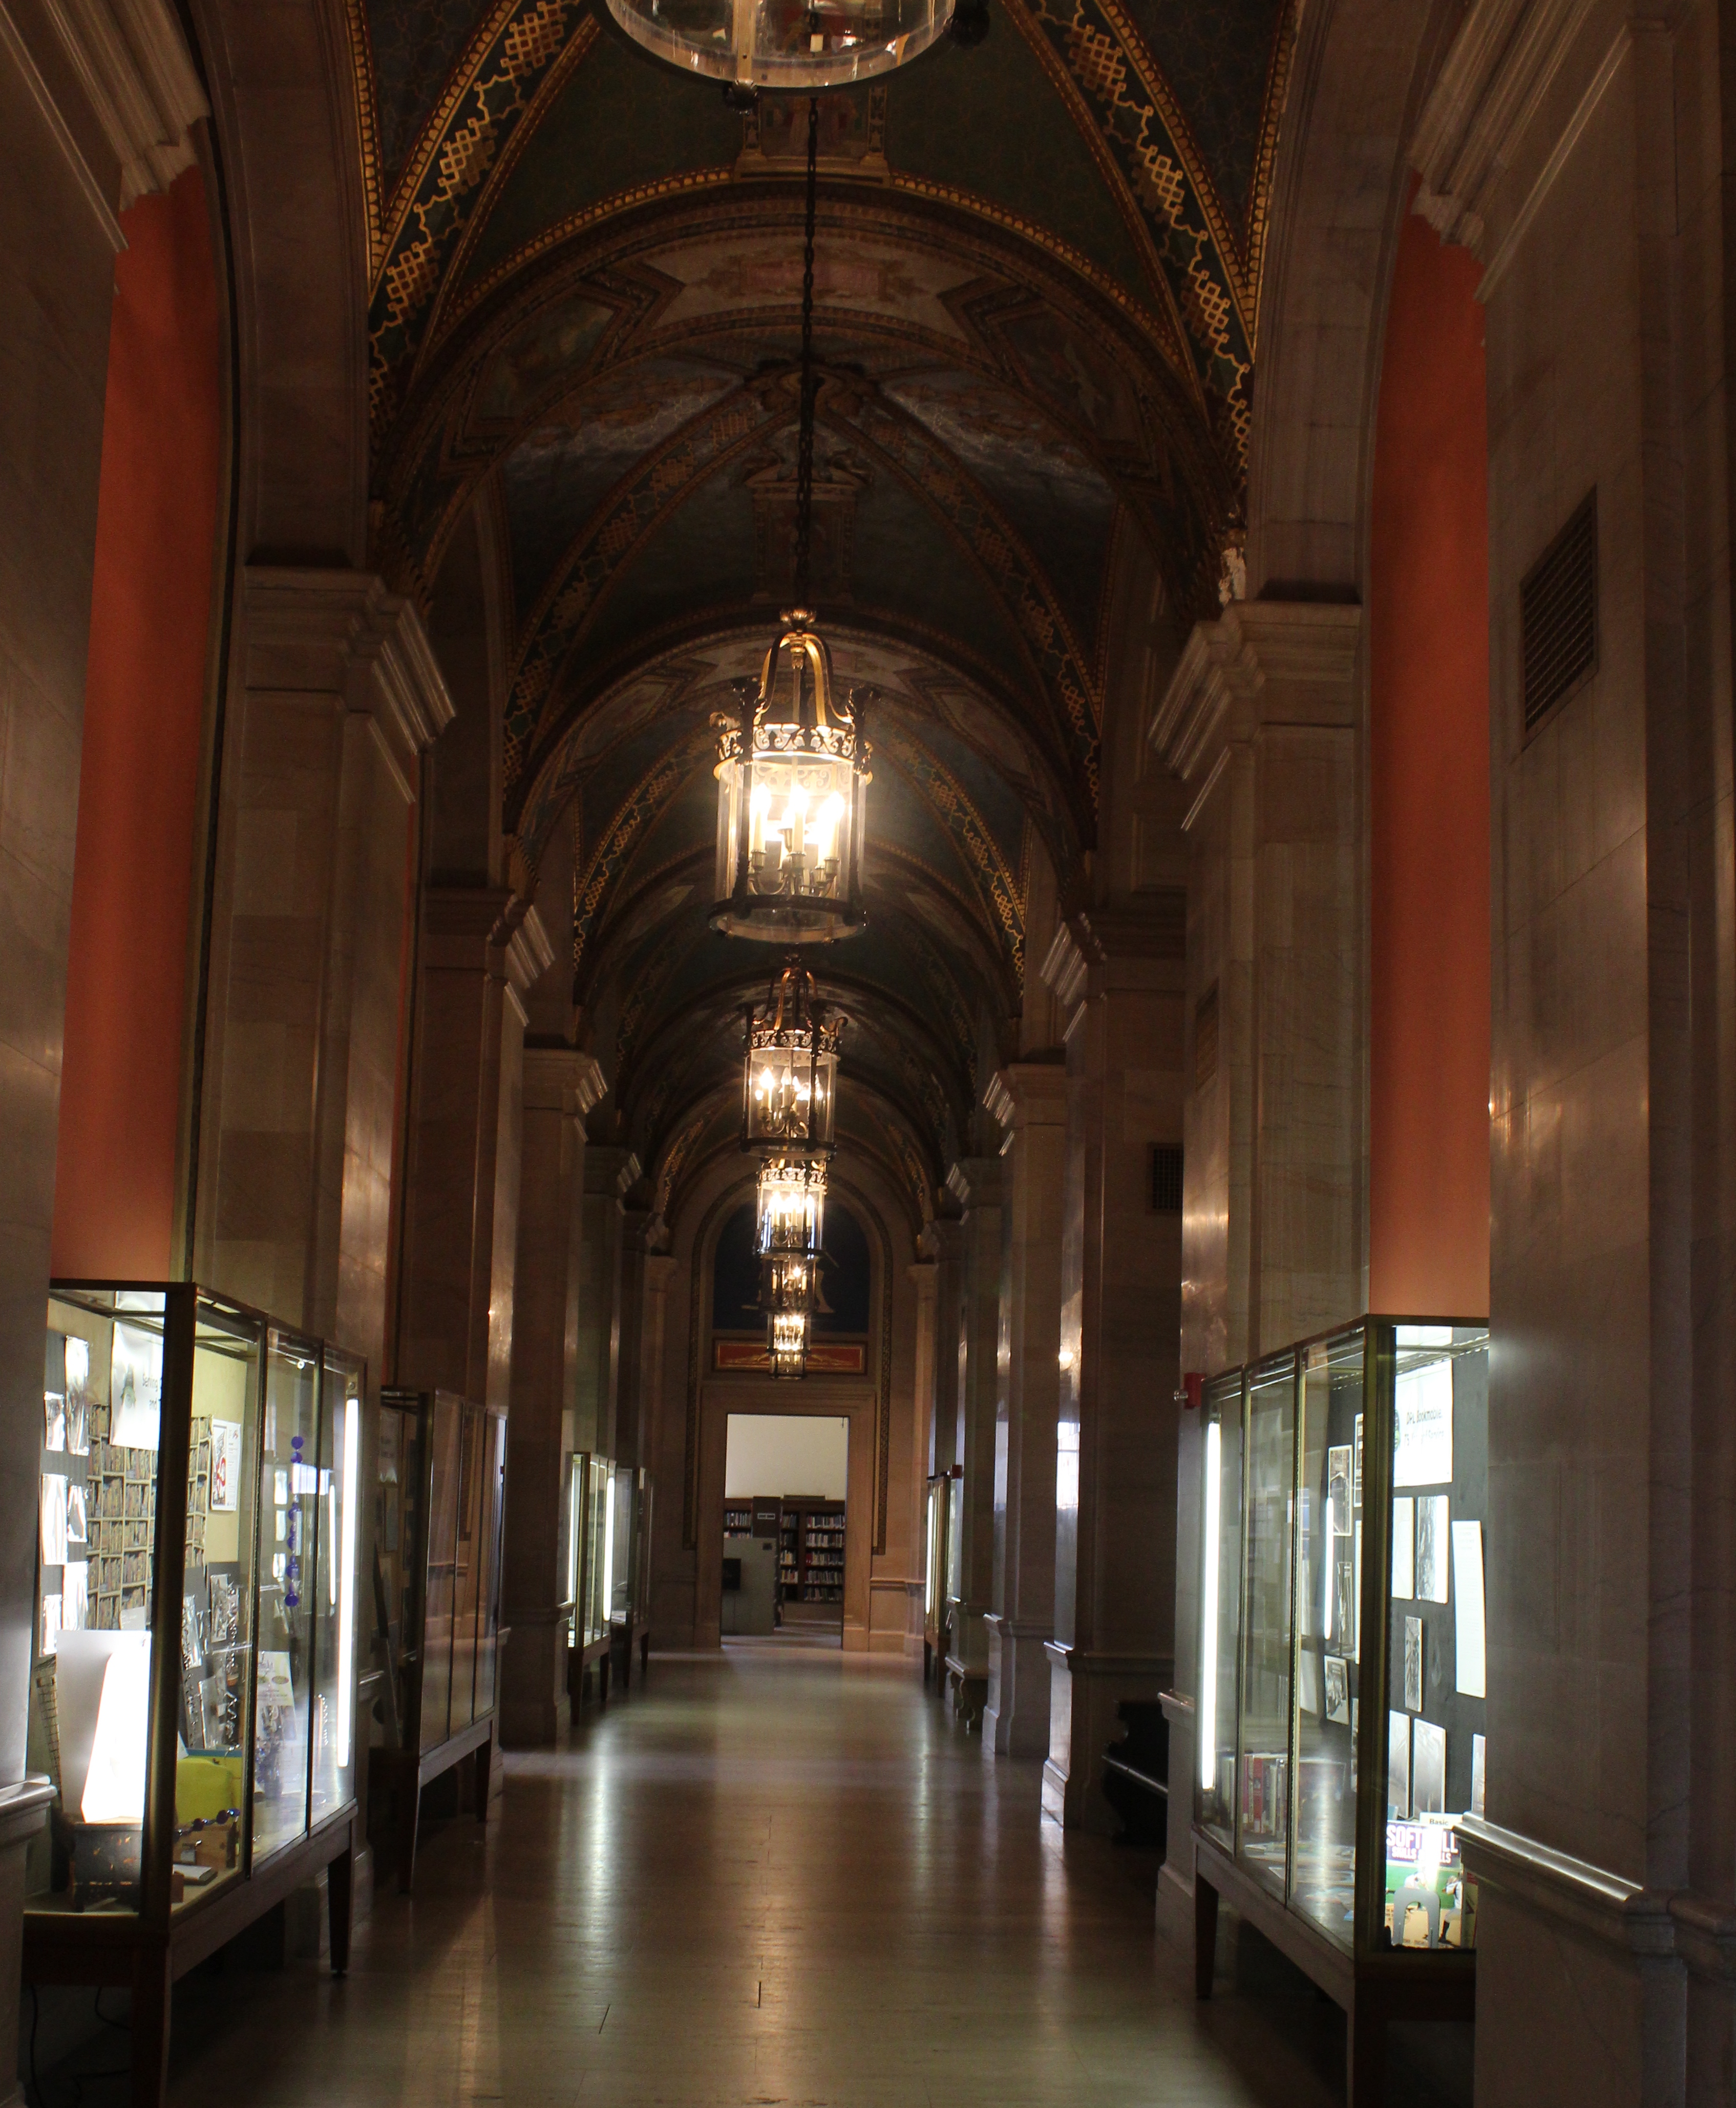 Photo of high ceiling hallway in historic main branch of the Detroit Public Library.